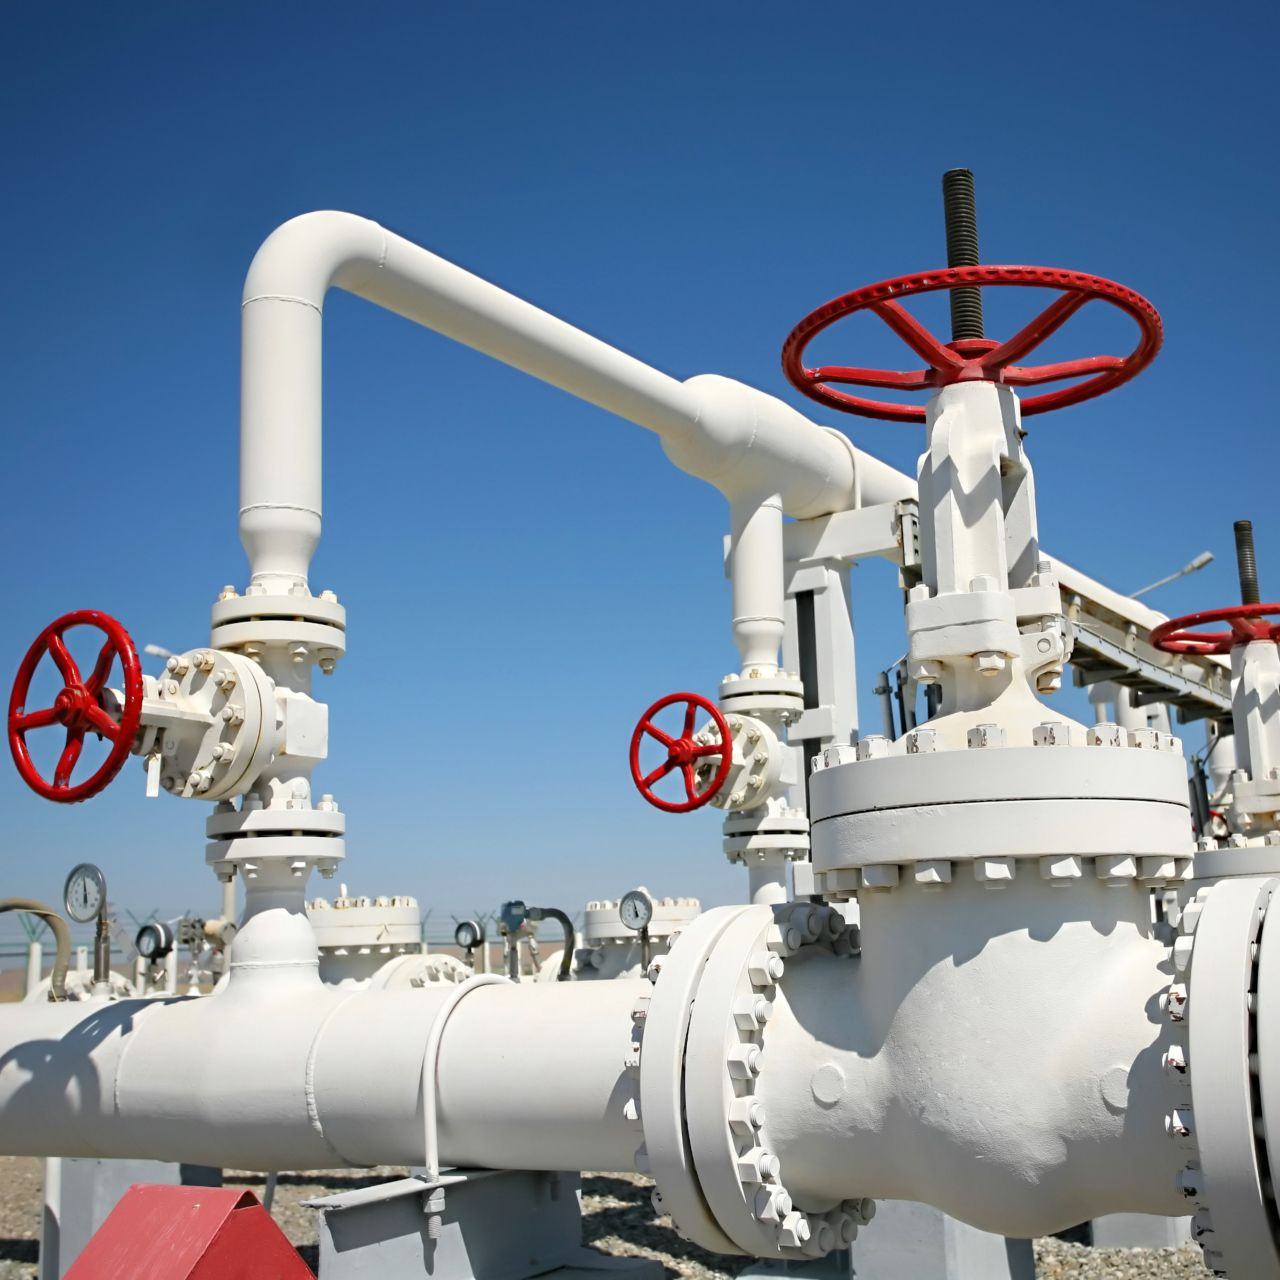 sps-his-gci-oil-gas-processing-plant-sstk-138247598